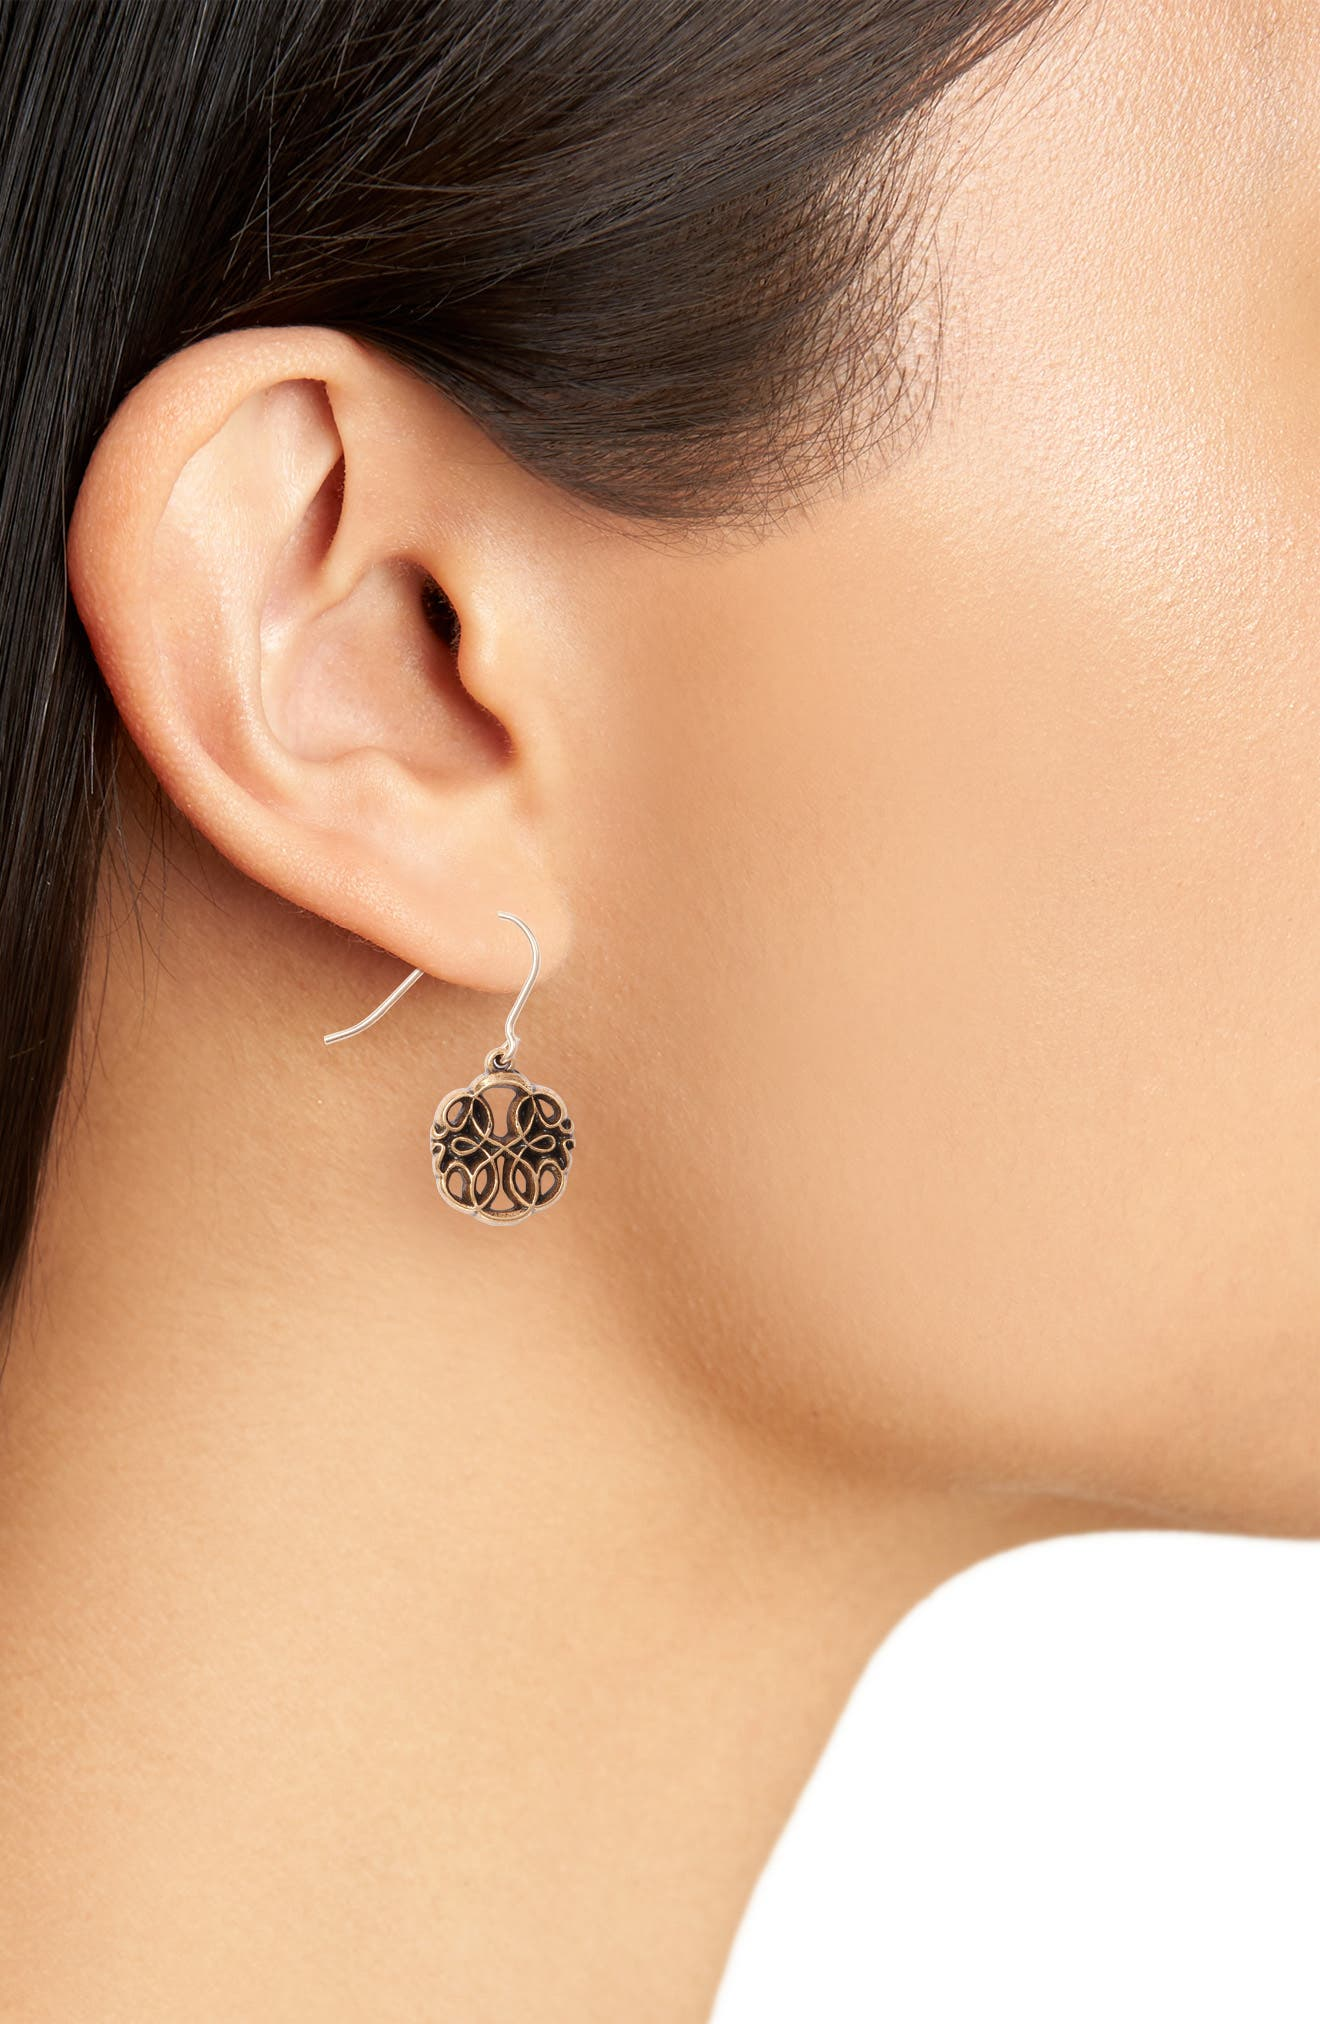 Path of Life Drop Earrings,                             Alternate thumbnail 2, color,                             Gold